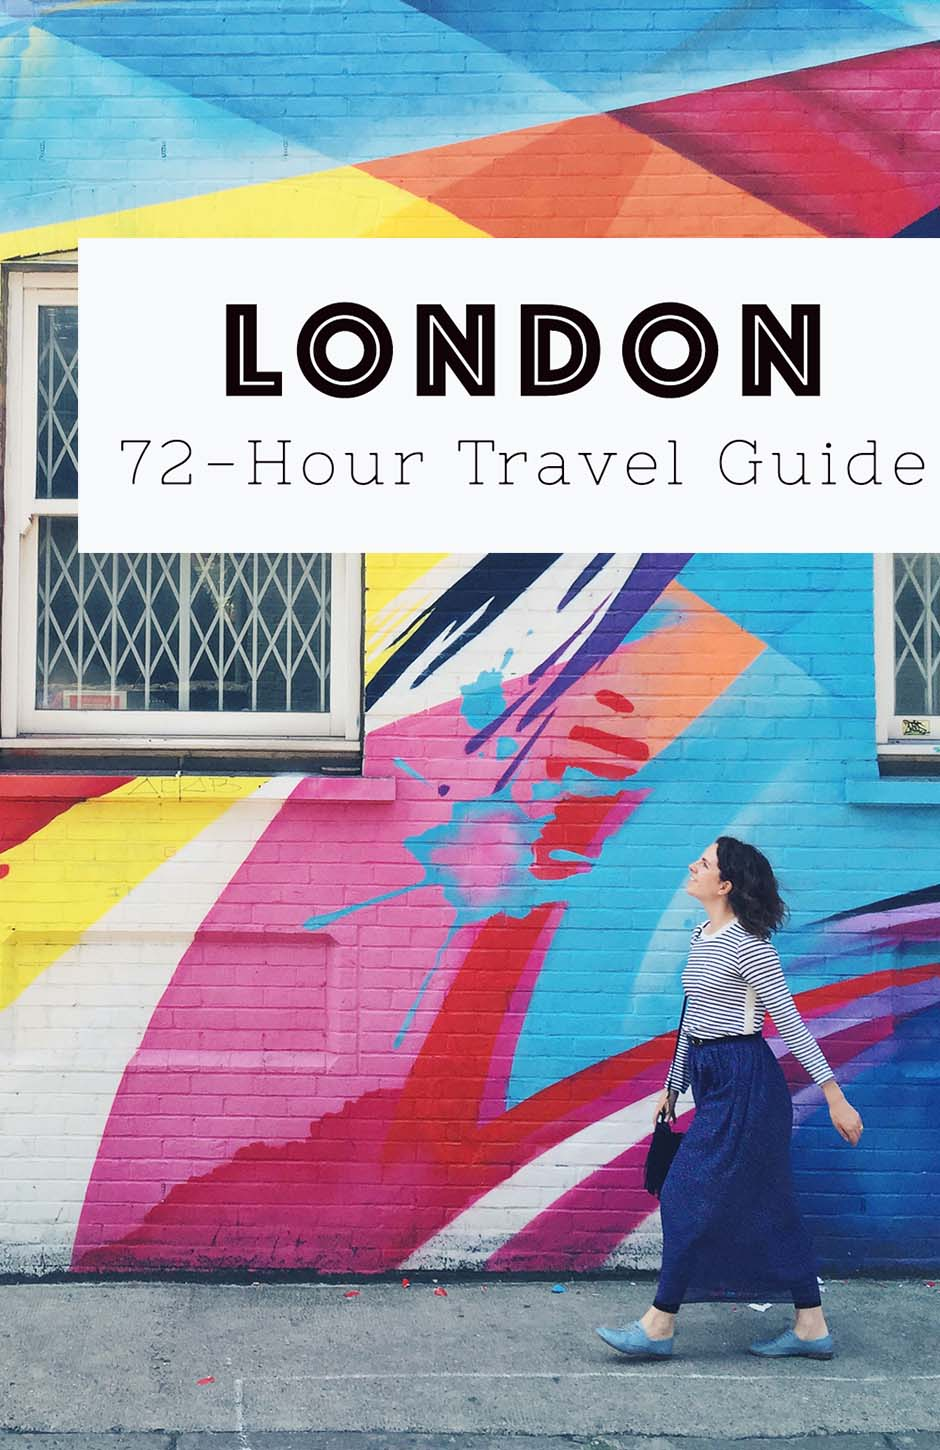 London travel guide - 72 Hours in the city